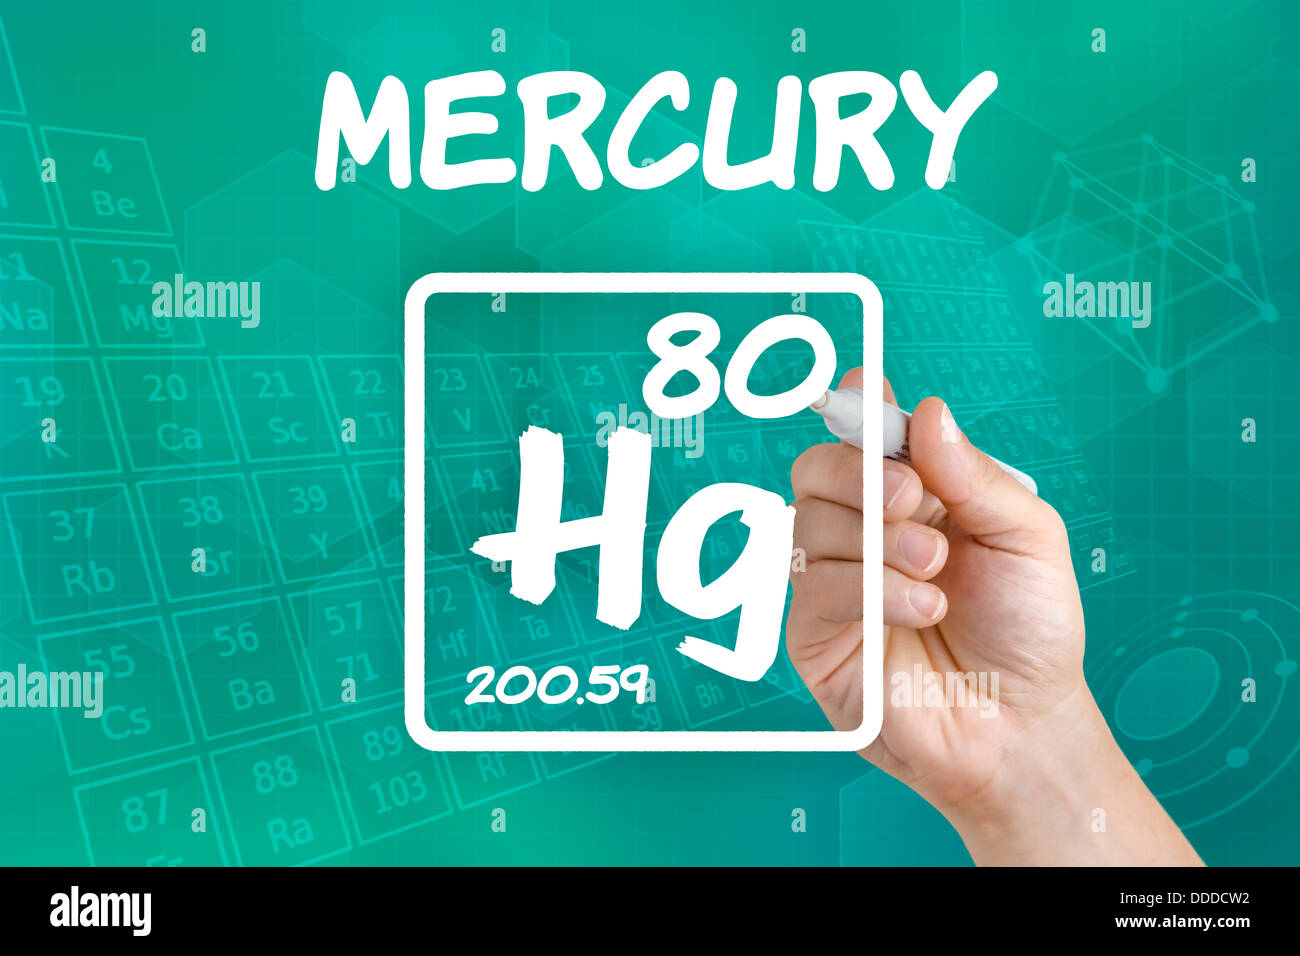 Symbol For The Chemical Element Mercury Stock Photo 59917118 Alamy